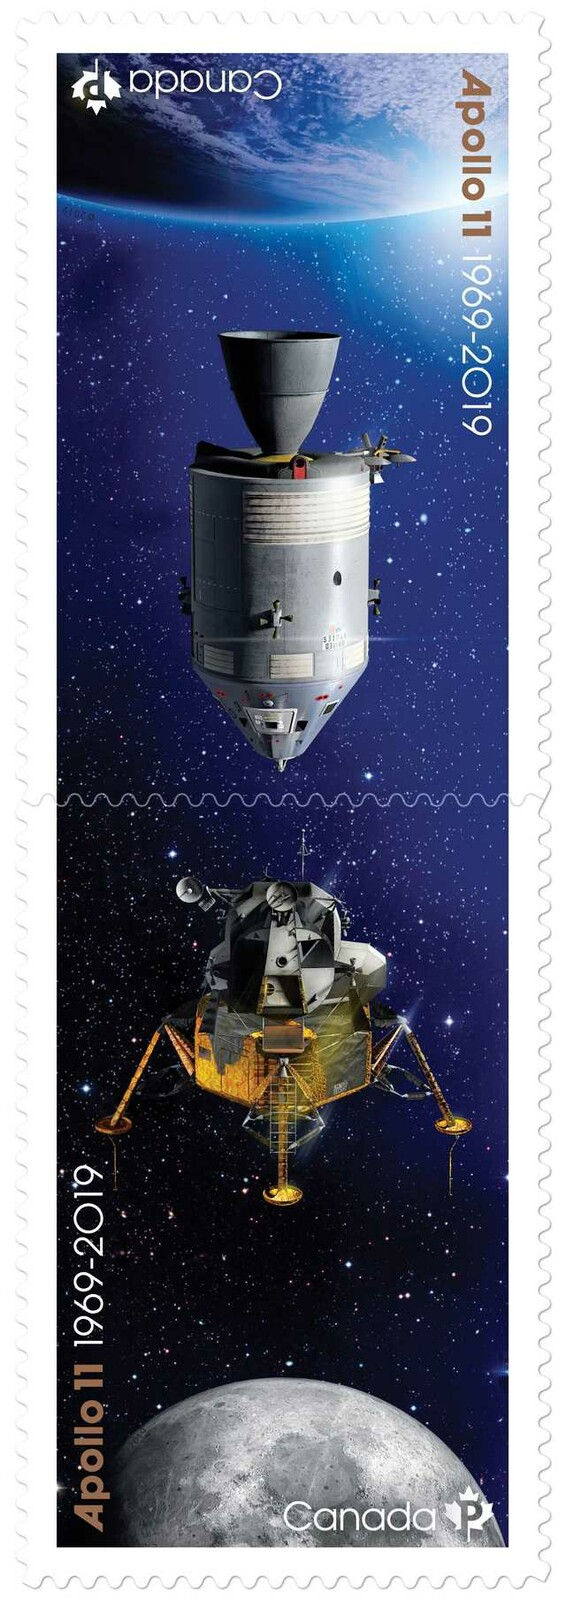 50th Anniversary Apollo 11 Stamp